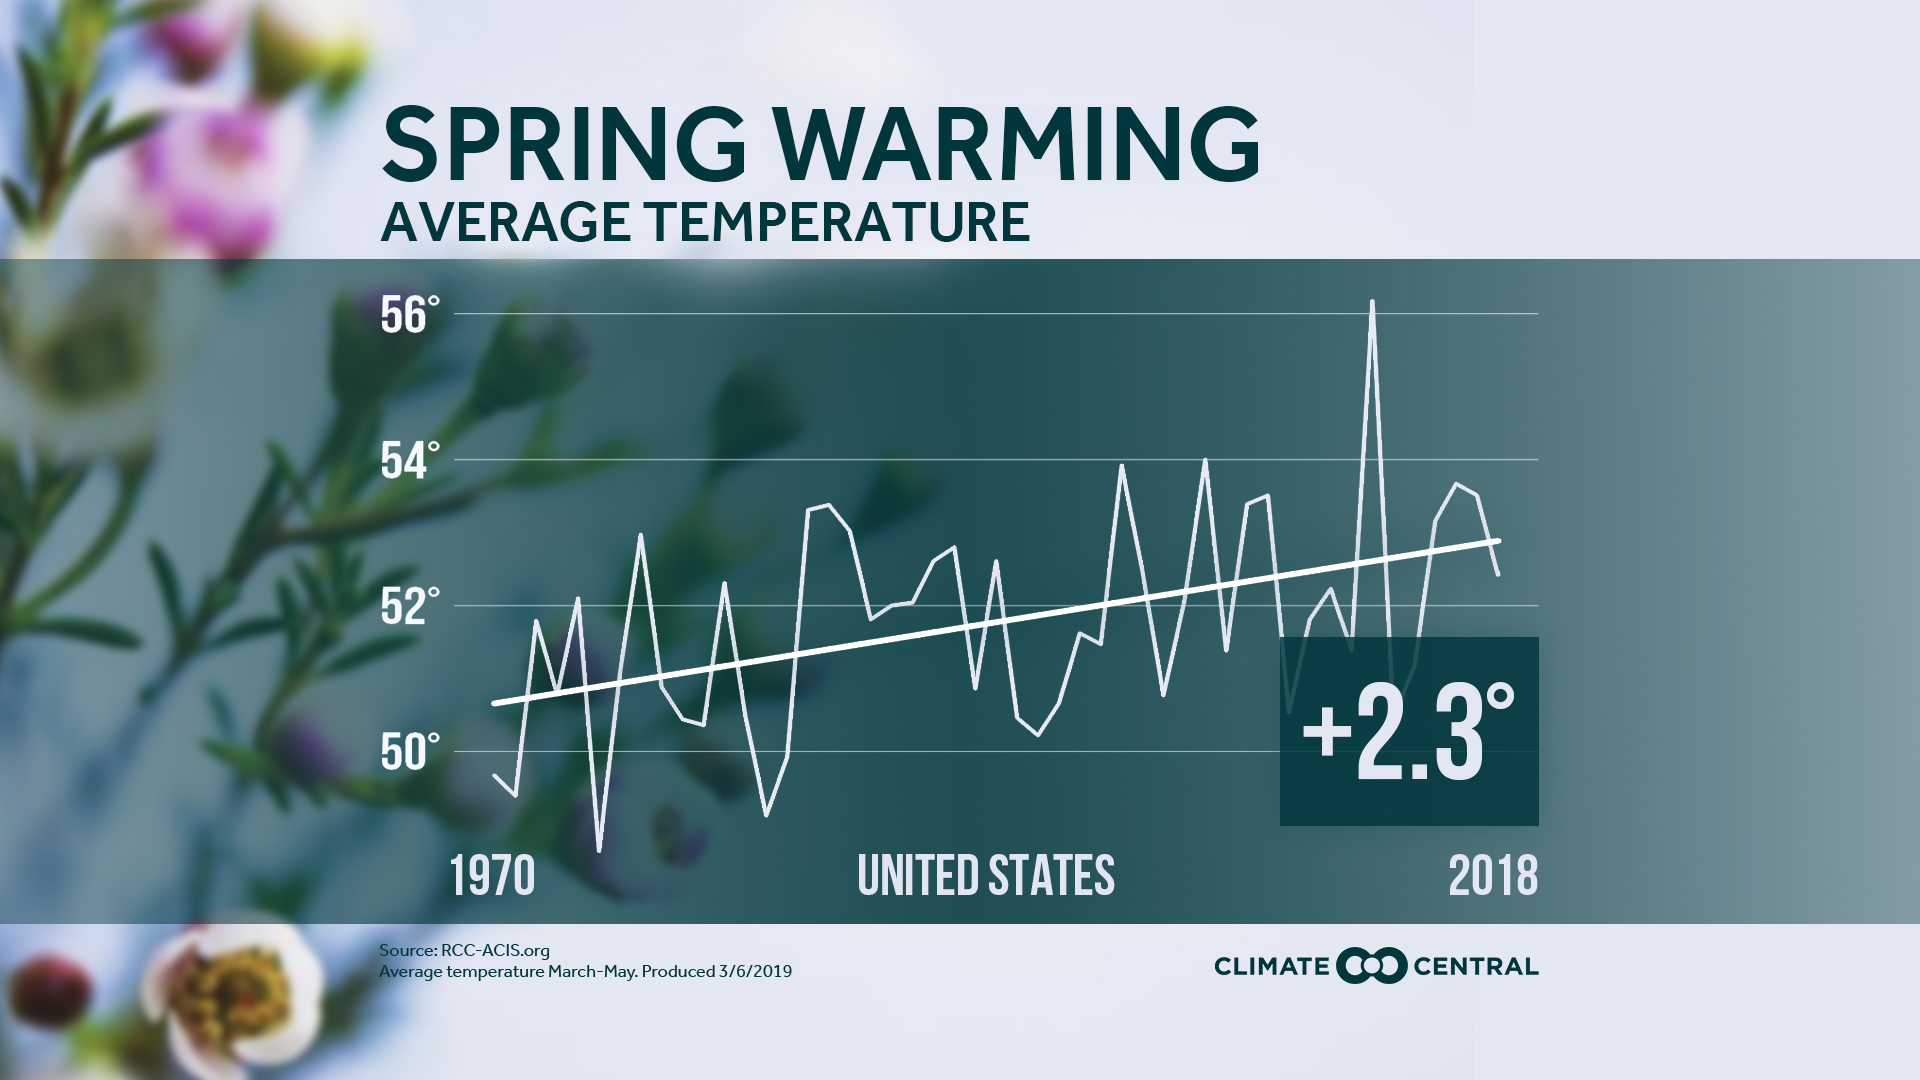 Spring Warming Across the U.S.